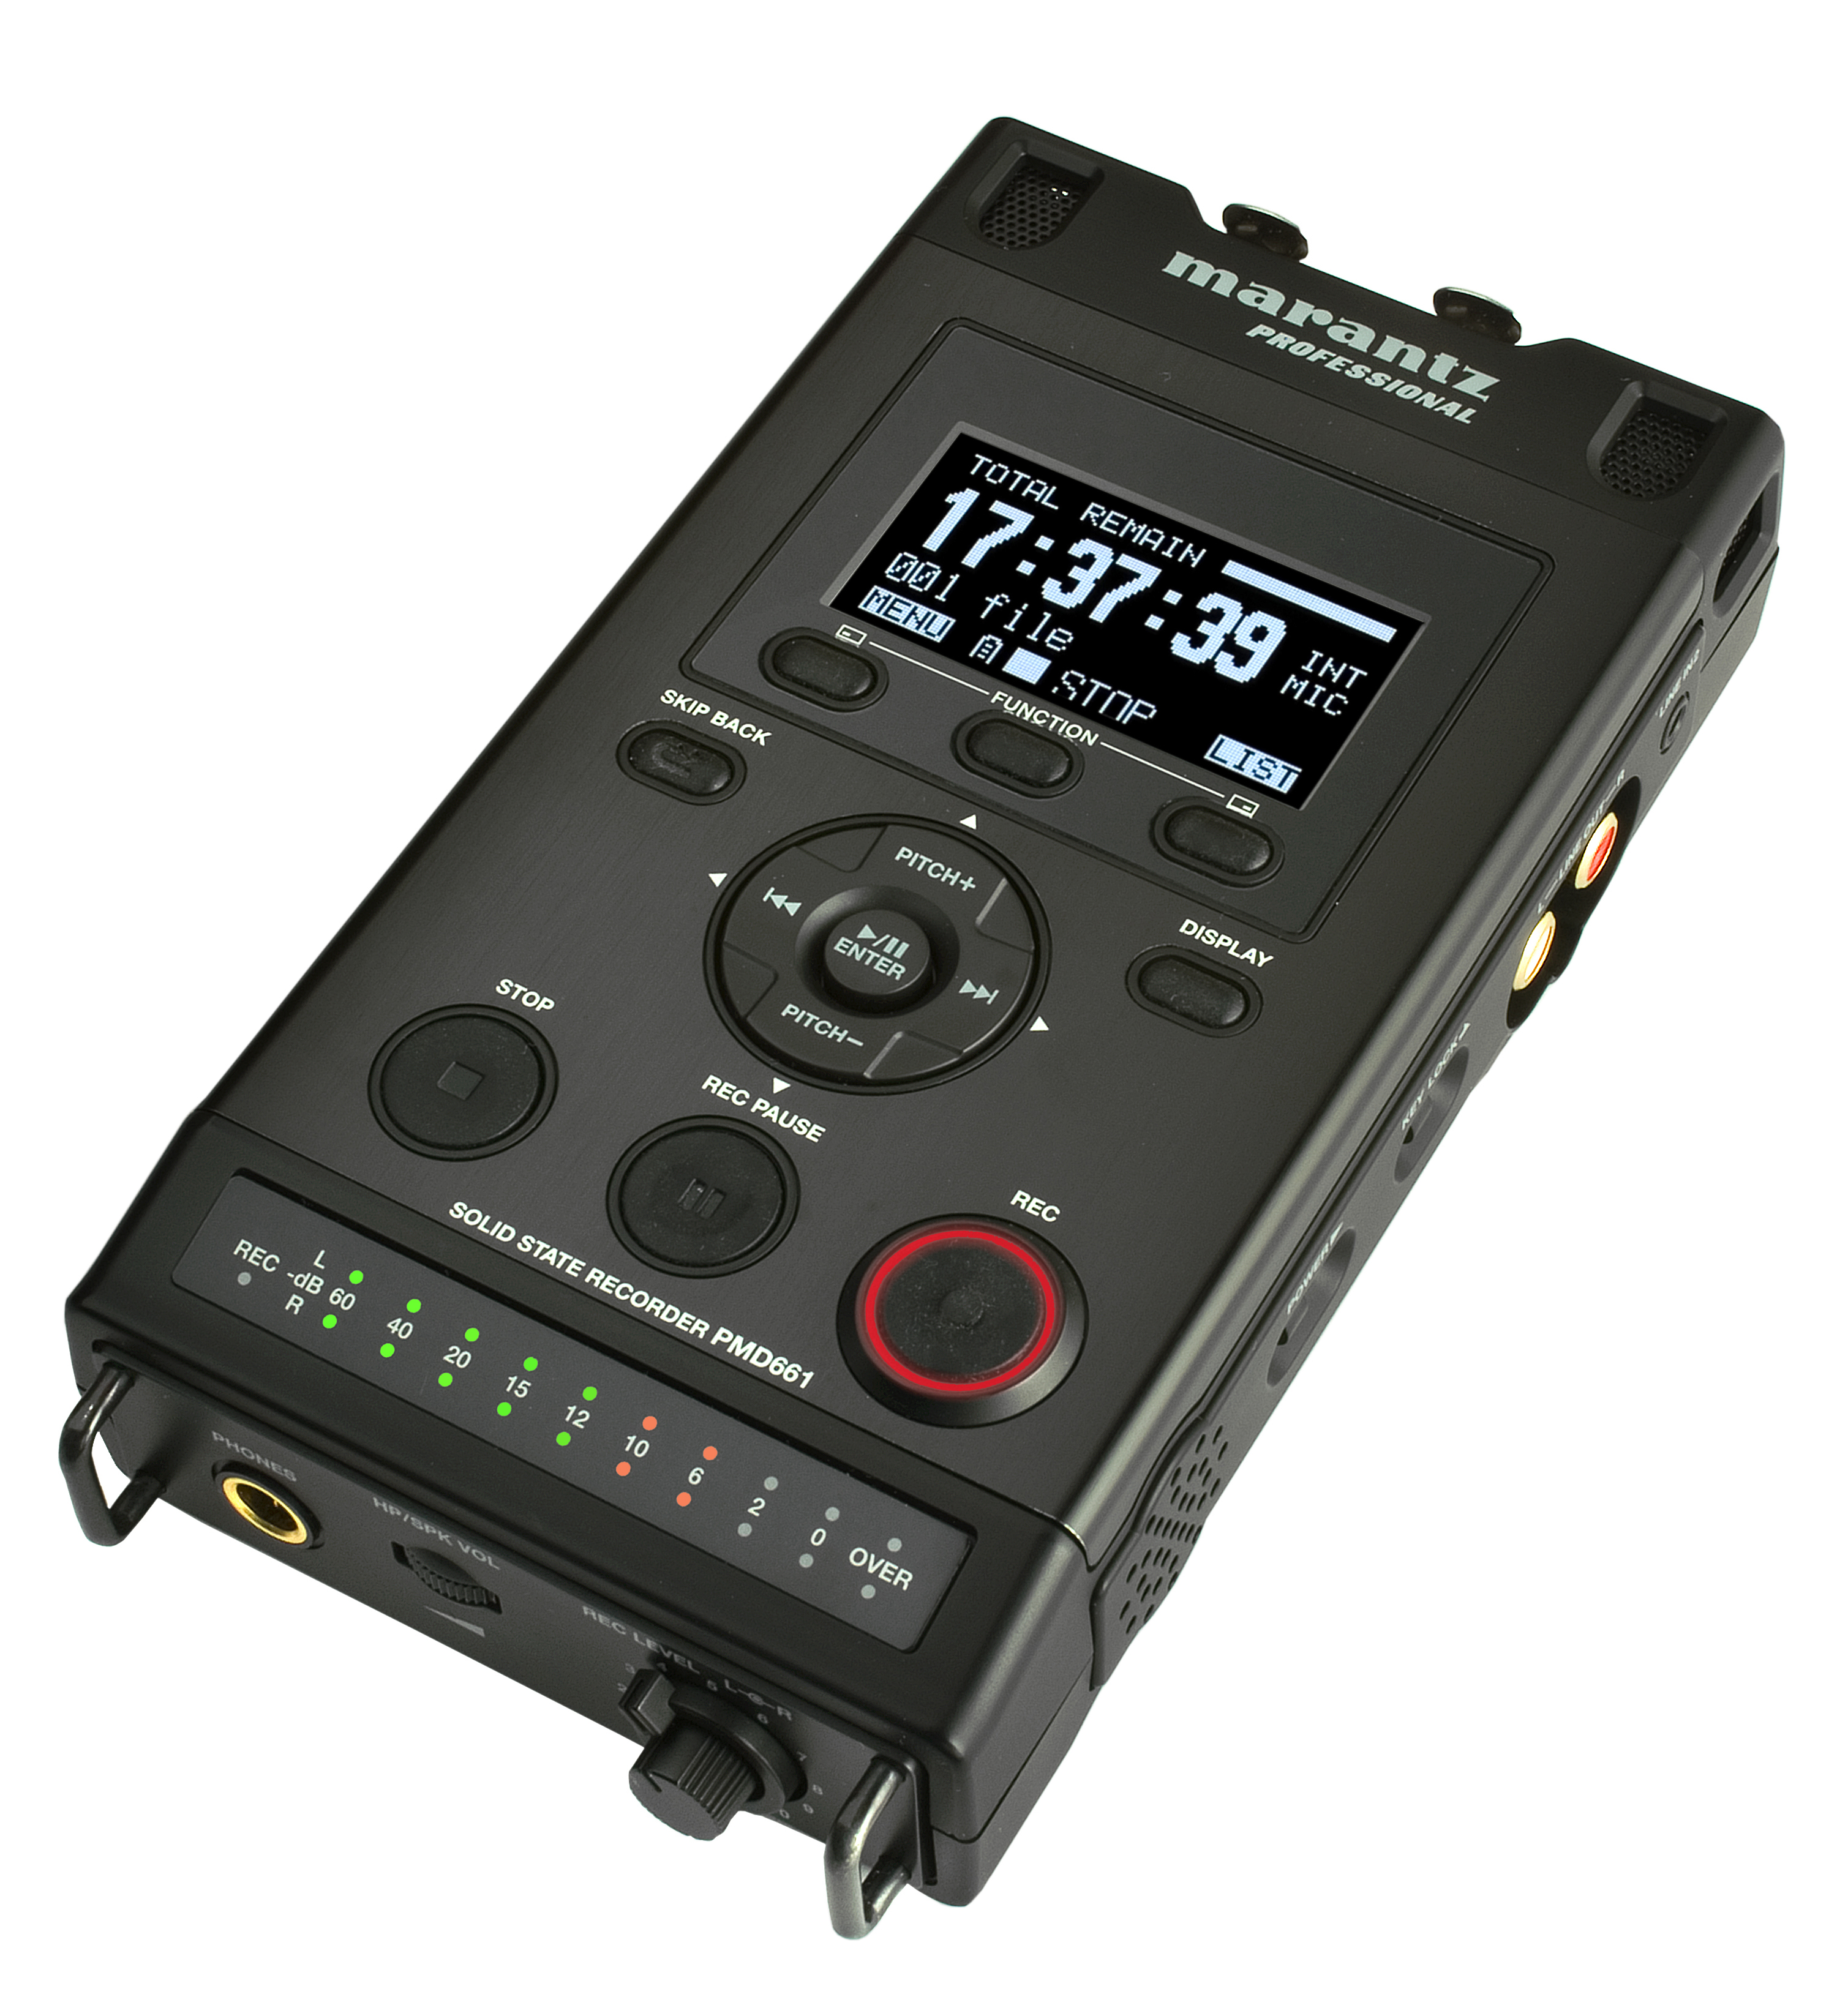 Marantz PMD-661 Compact Flash Recorder